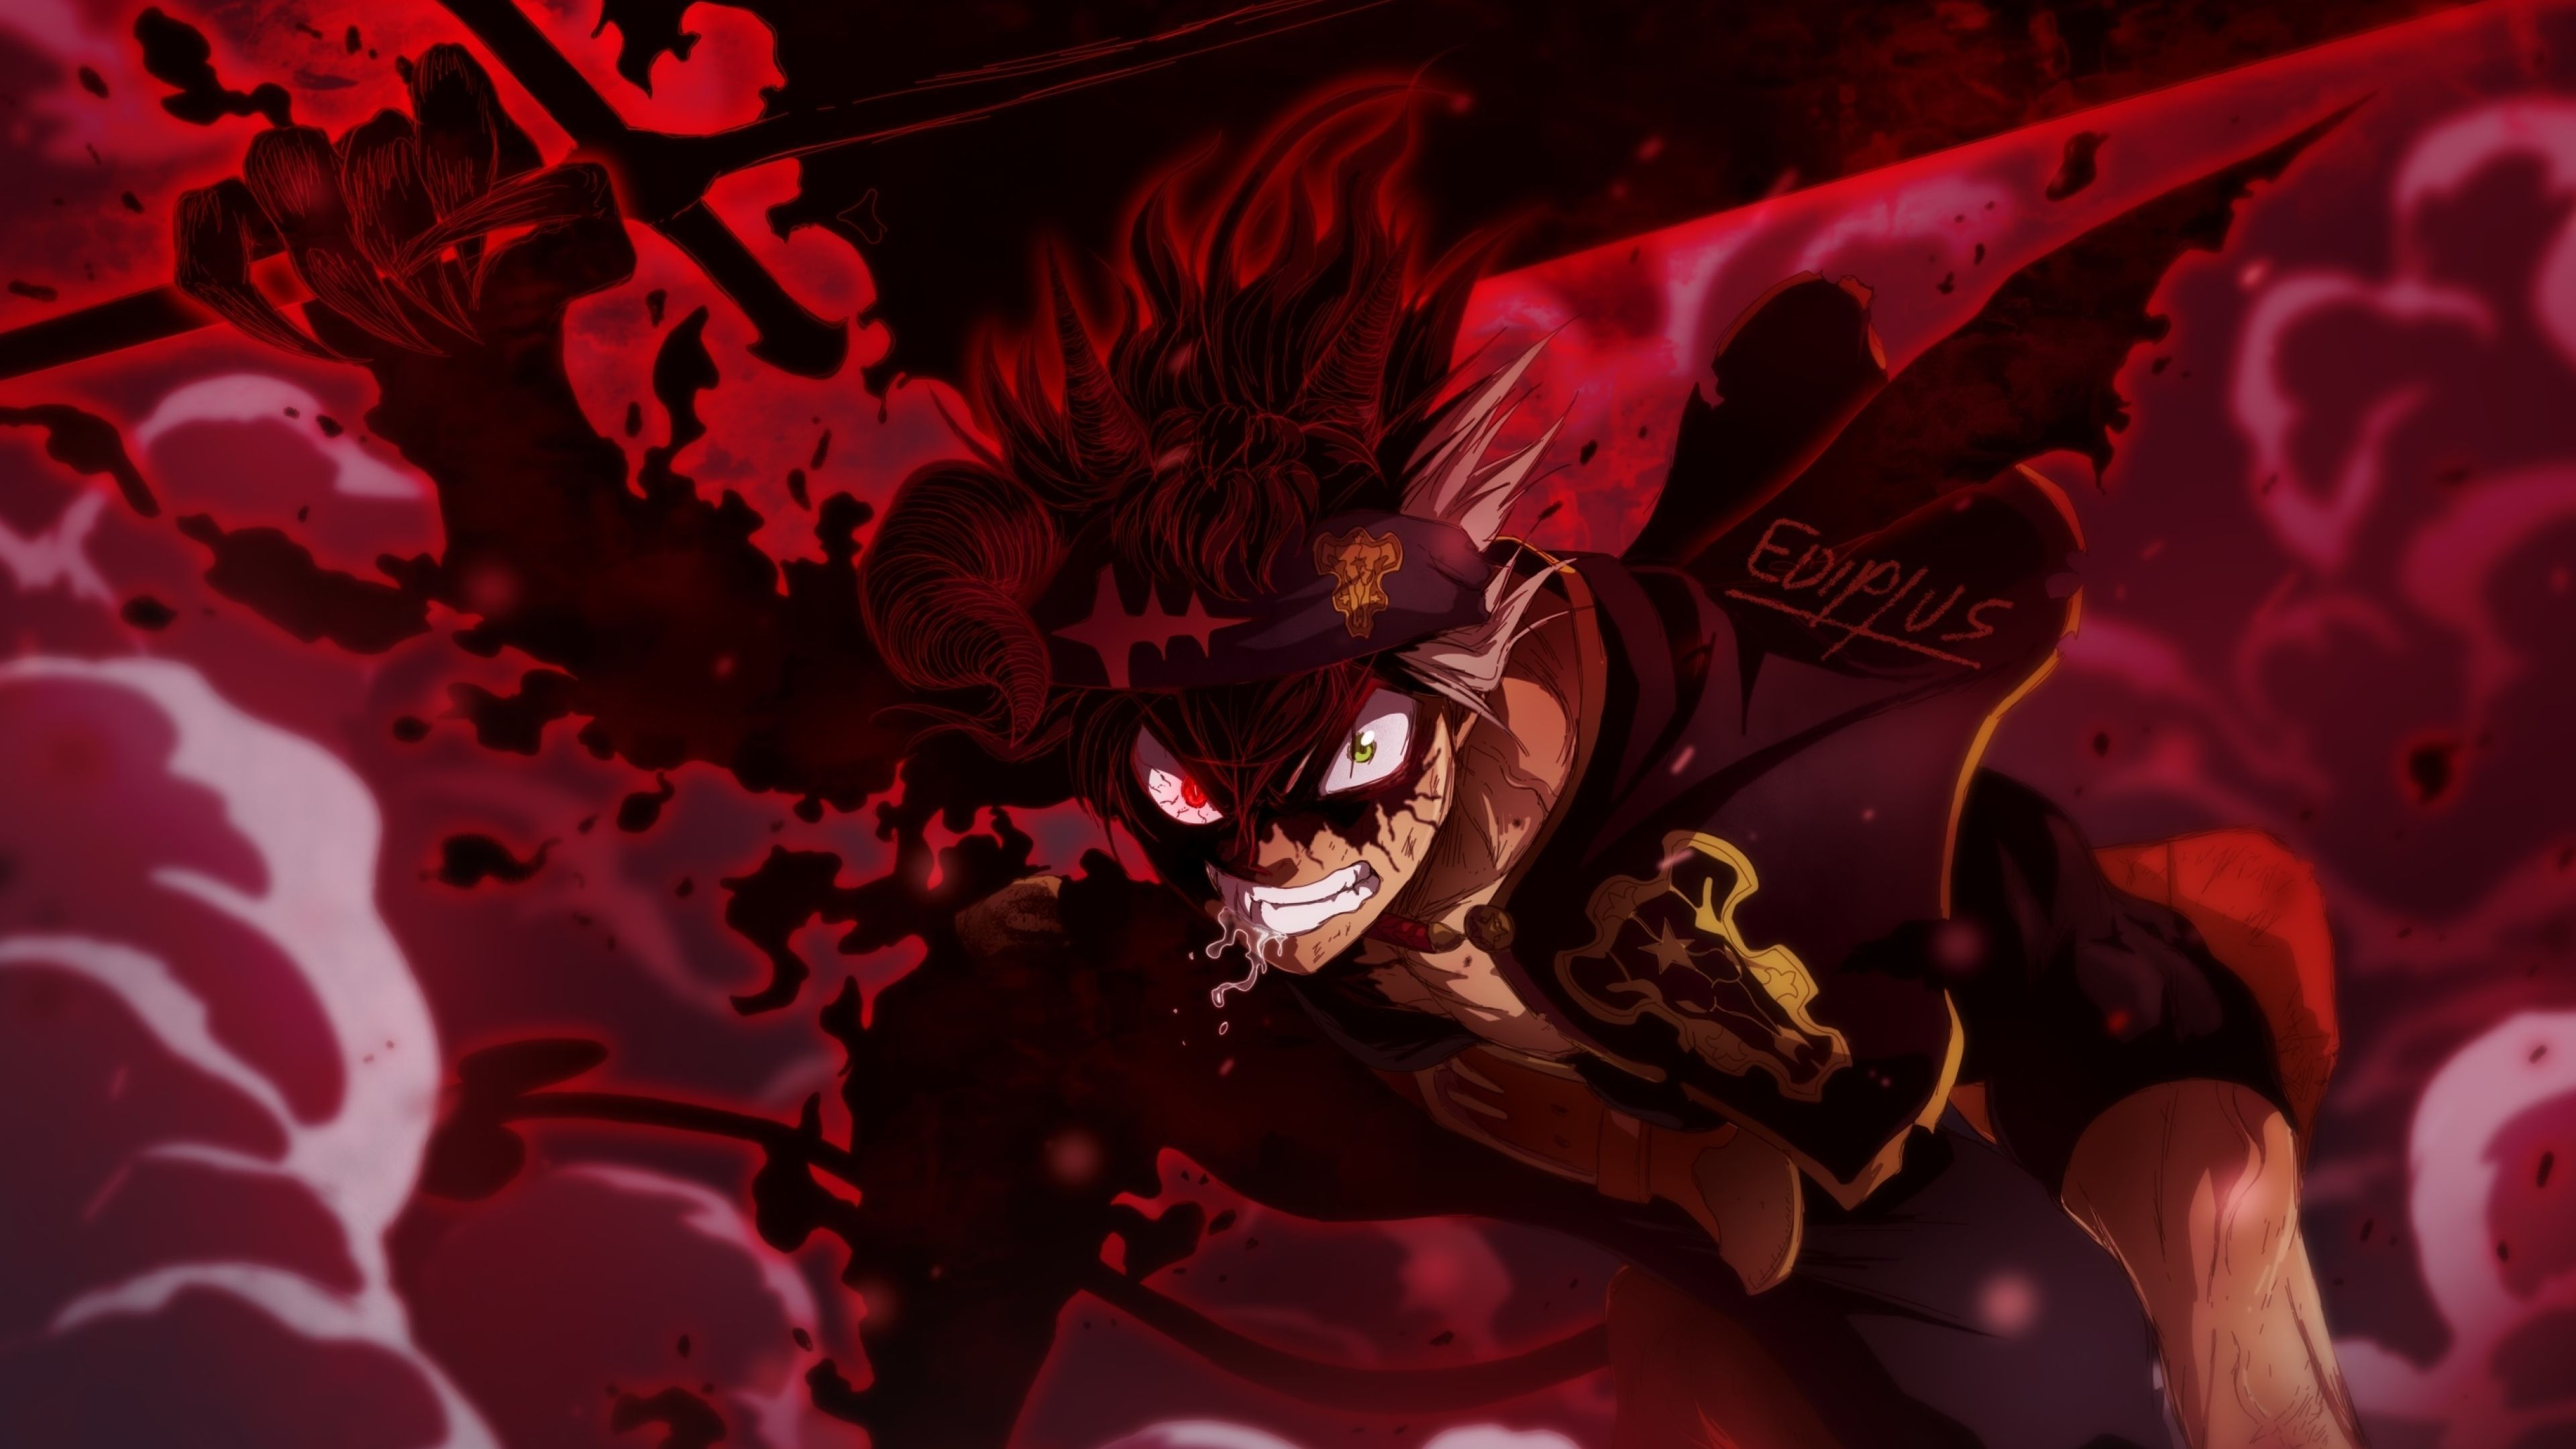 Anime black clover yami sukehiro book hd wallpaper | background image. Black Clover Live Wallpapers - Wallpaper Cave